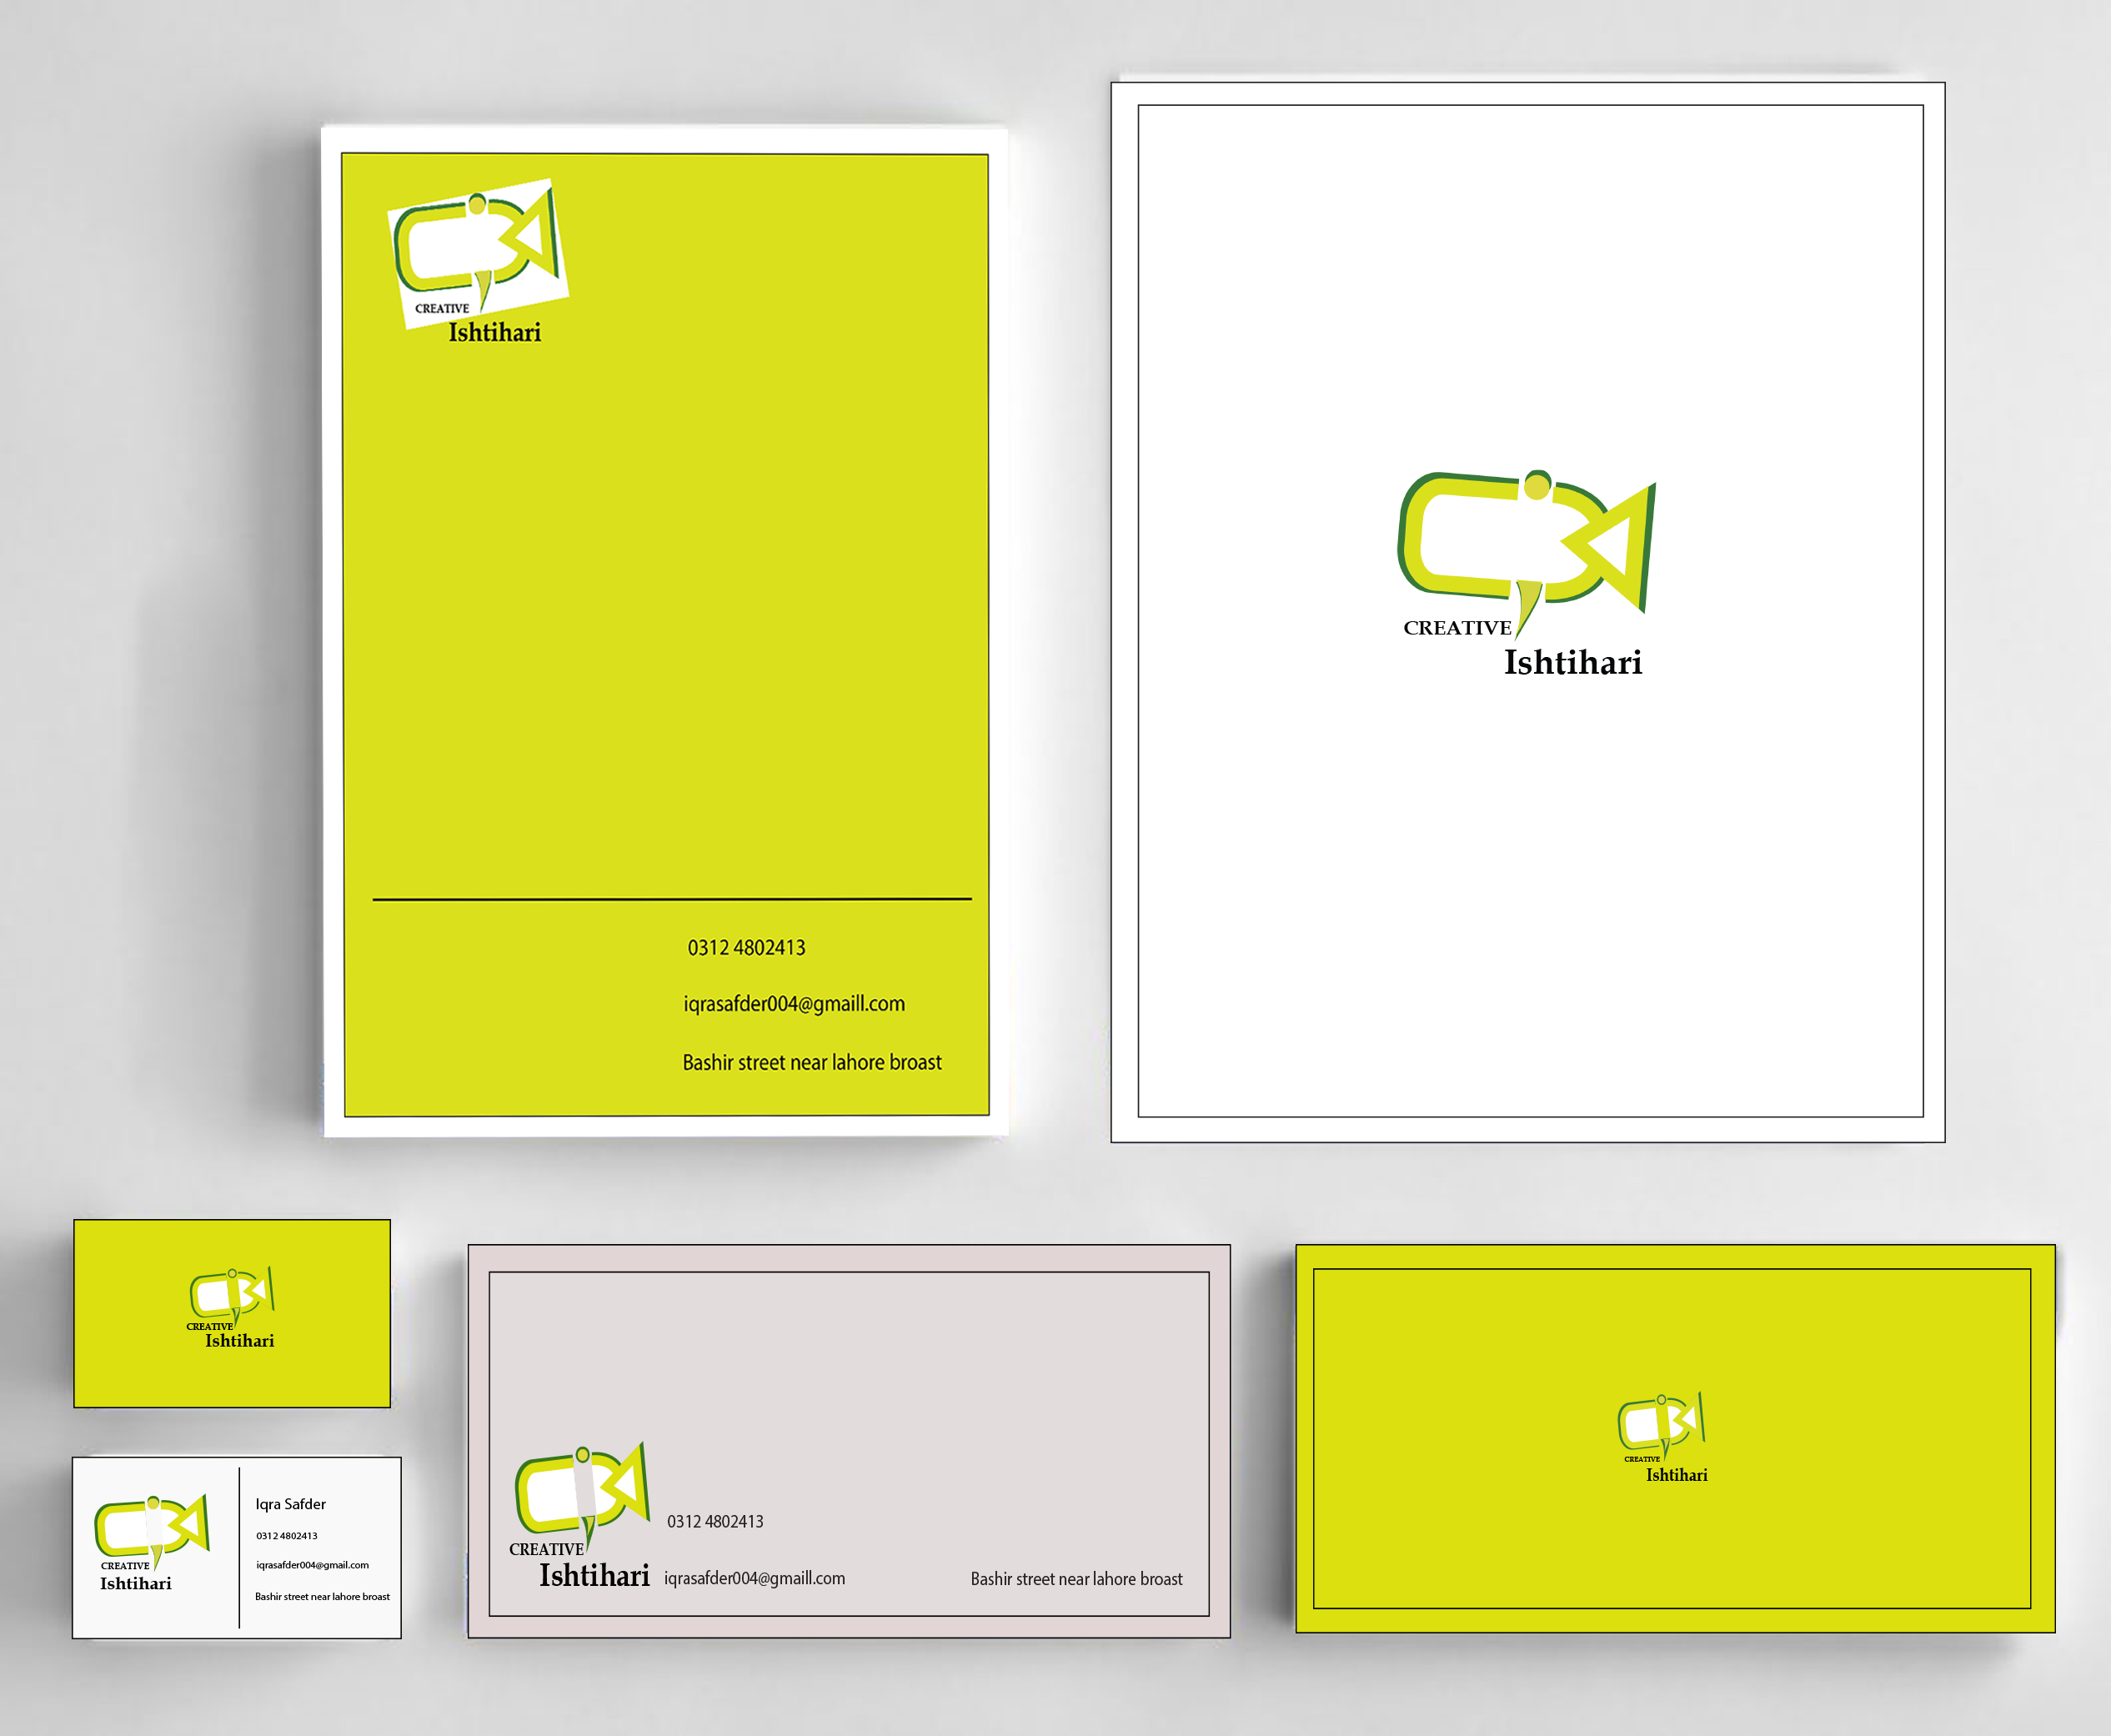 I will design professional and amazing business cards,  letterhead and stationary.